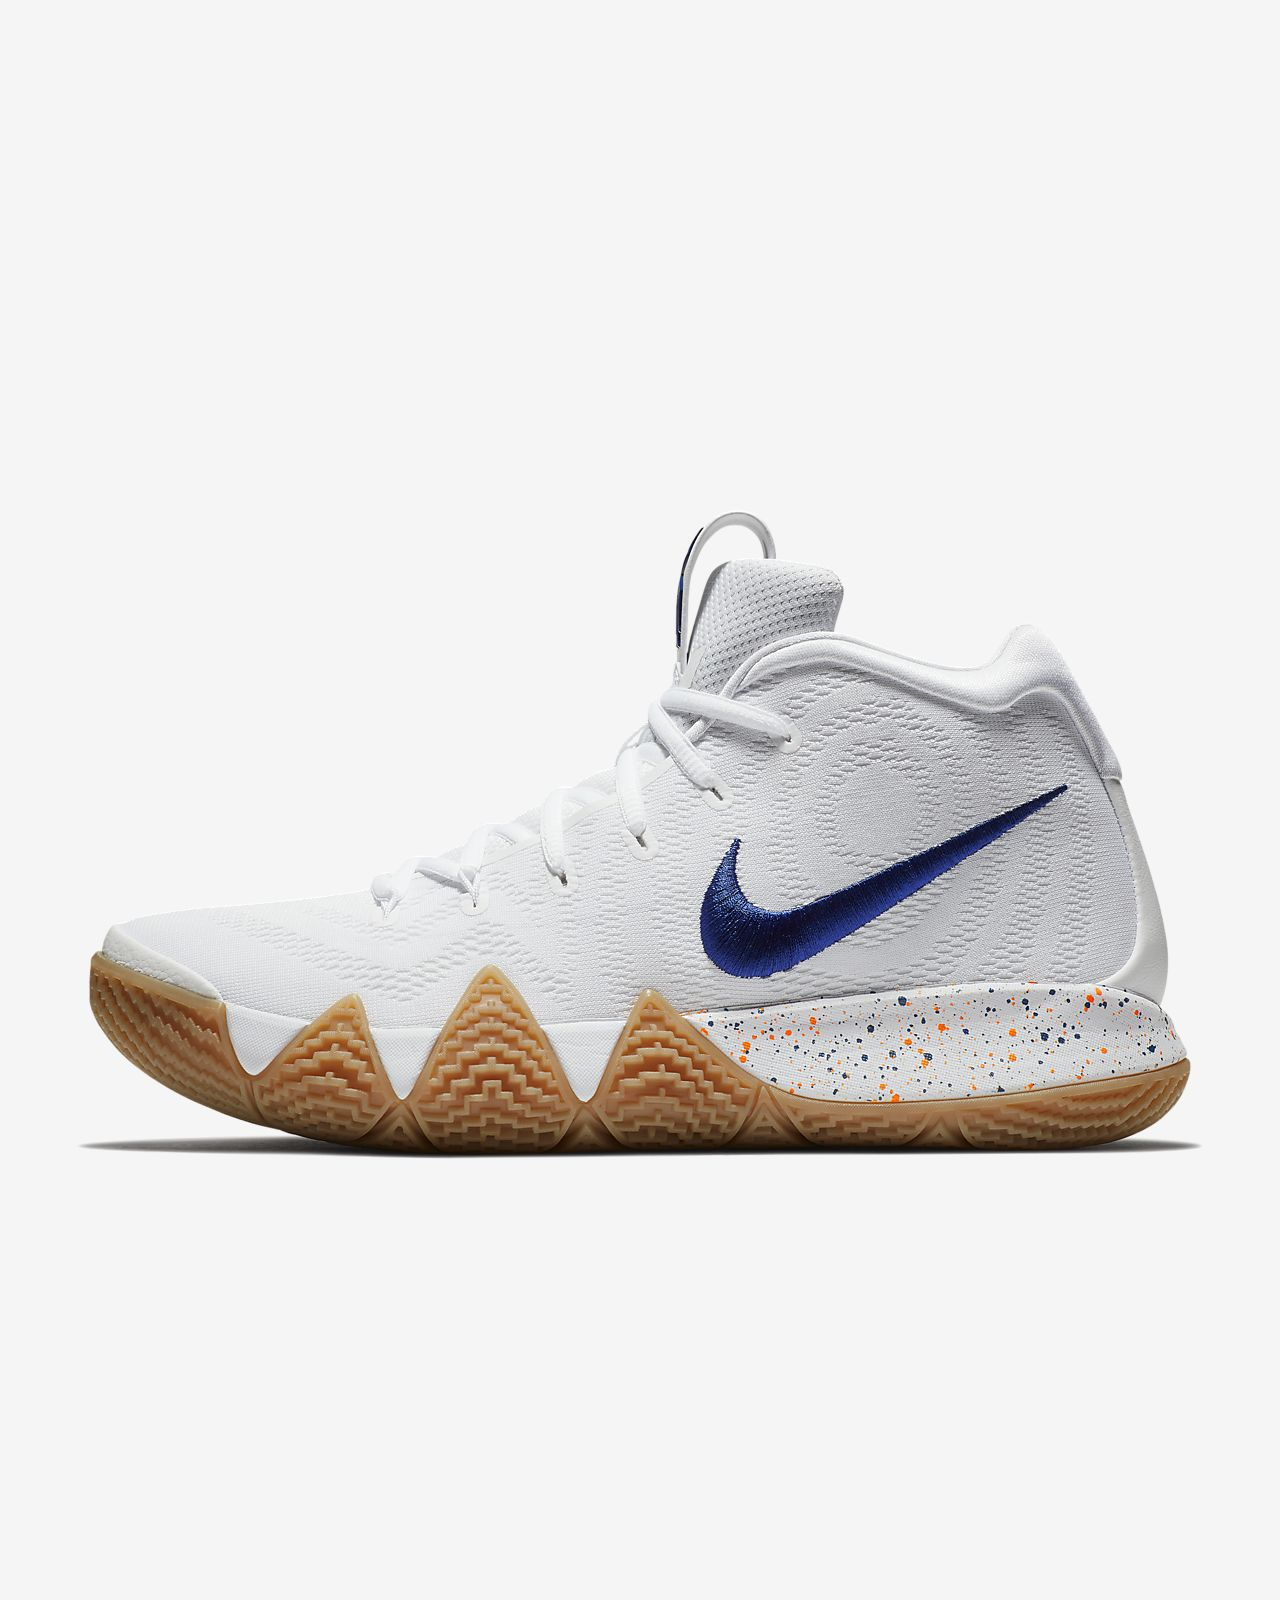 on sale 070b7 e00d4 Kyrie 4 'Uncle Drew' Basketball Shoe